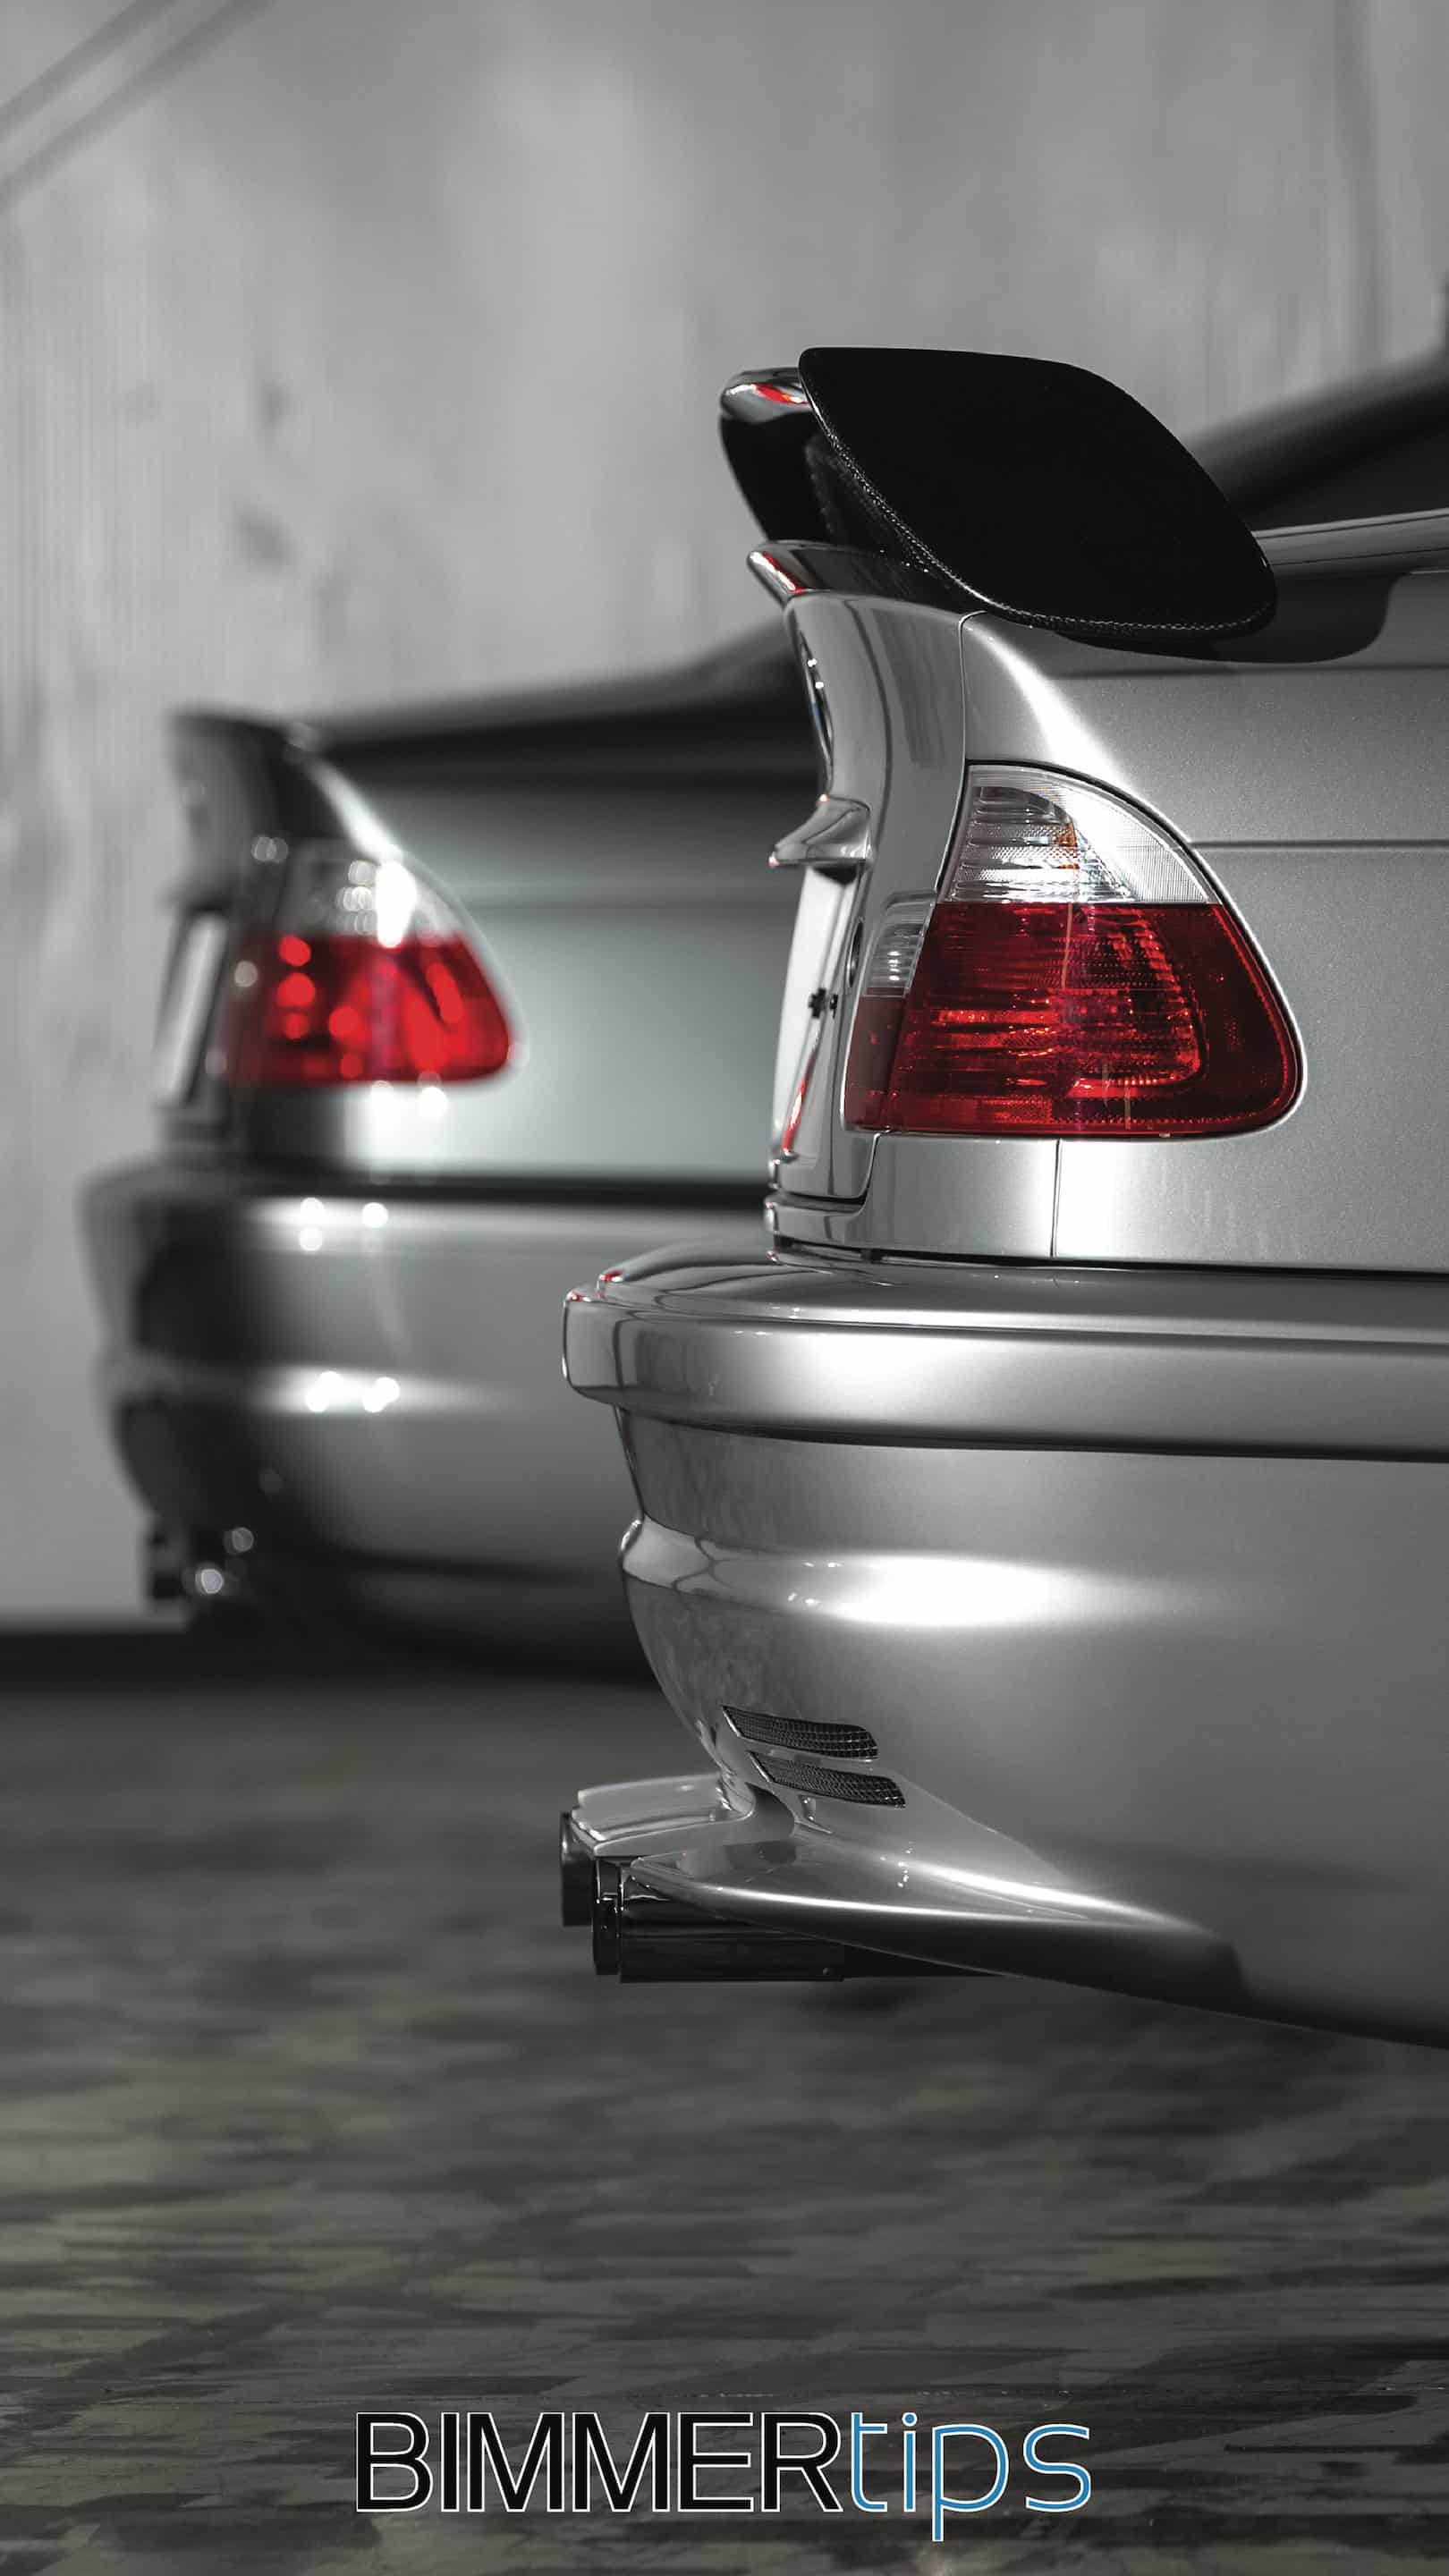 BMW E46 M3 GTR wallpaper android iphone